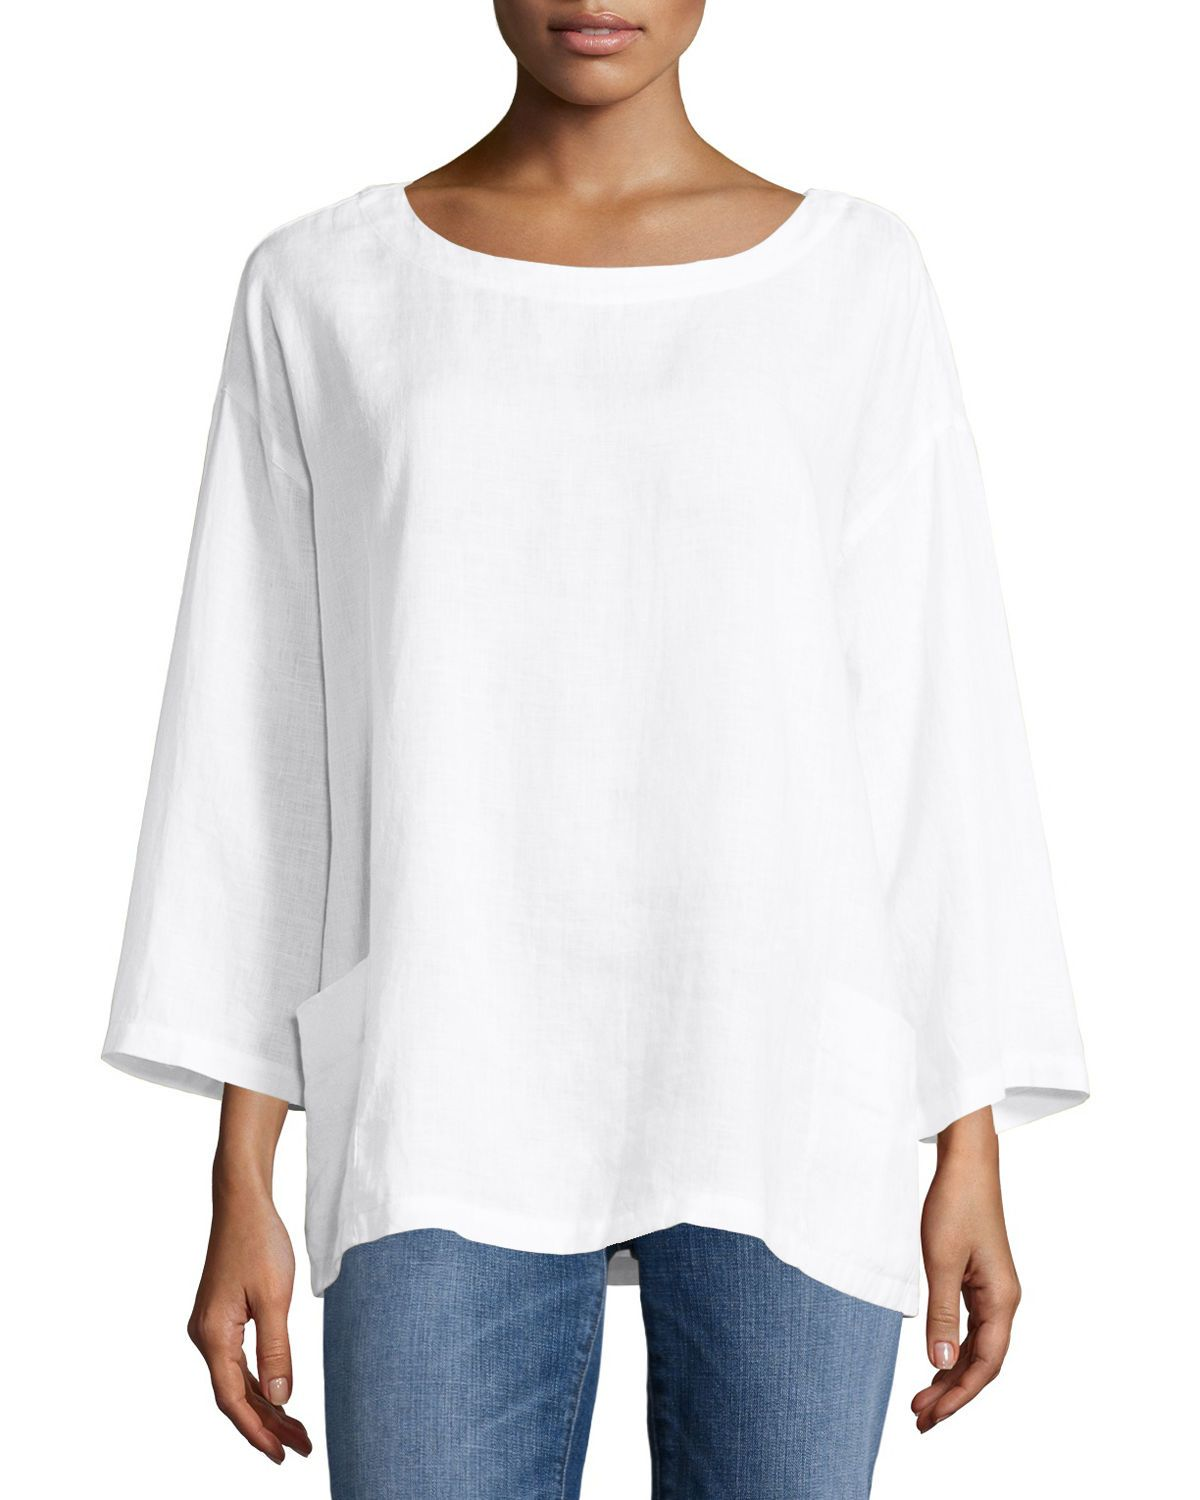 9a03f5c37ac Banded bateau neckline; button placket behind neck. Three-quarter,  drop-shoulder sleeves. Patch pockets at hip. Eileen Fisher tunic in  lightweight, organic ...